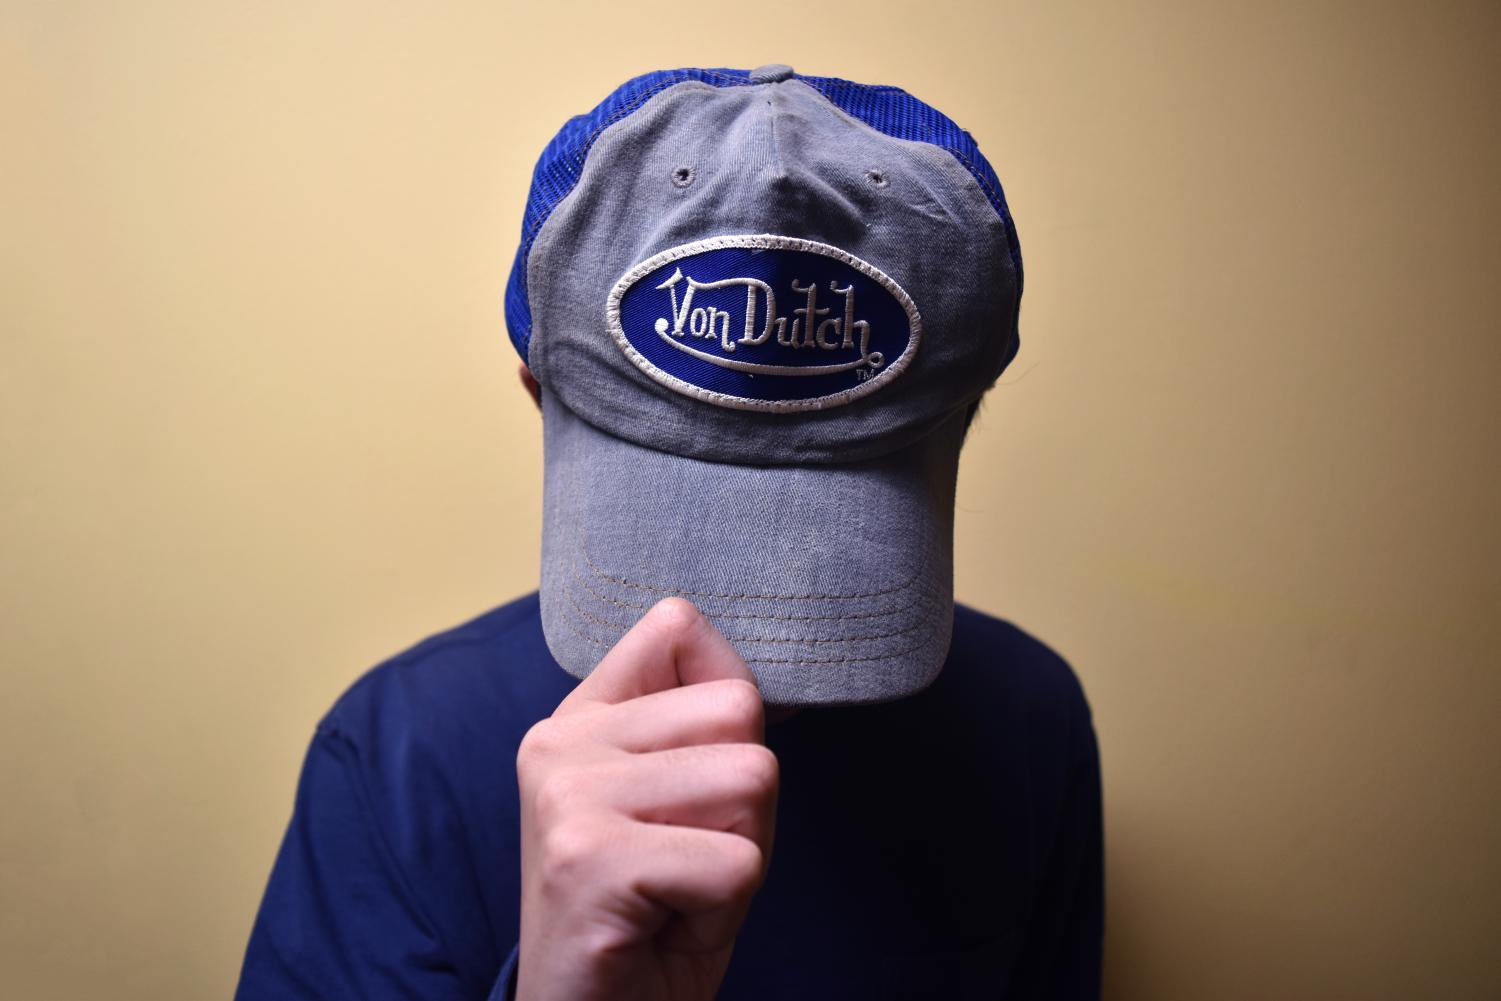 Von Dutch was an incredibly popular brand in the early 2000s, but has since faded.